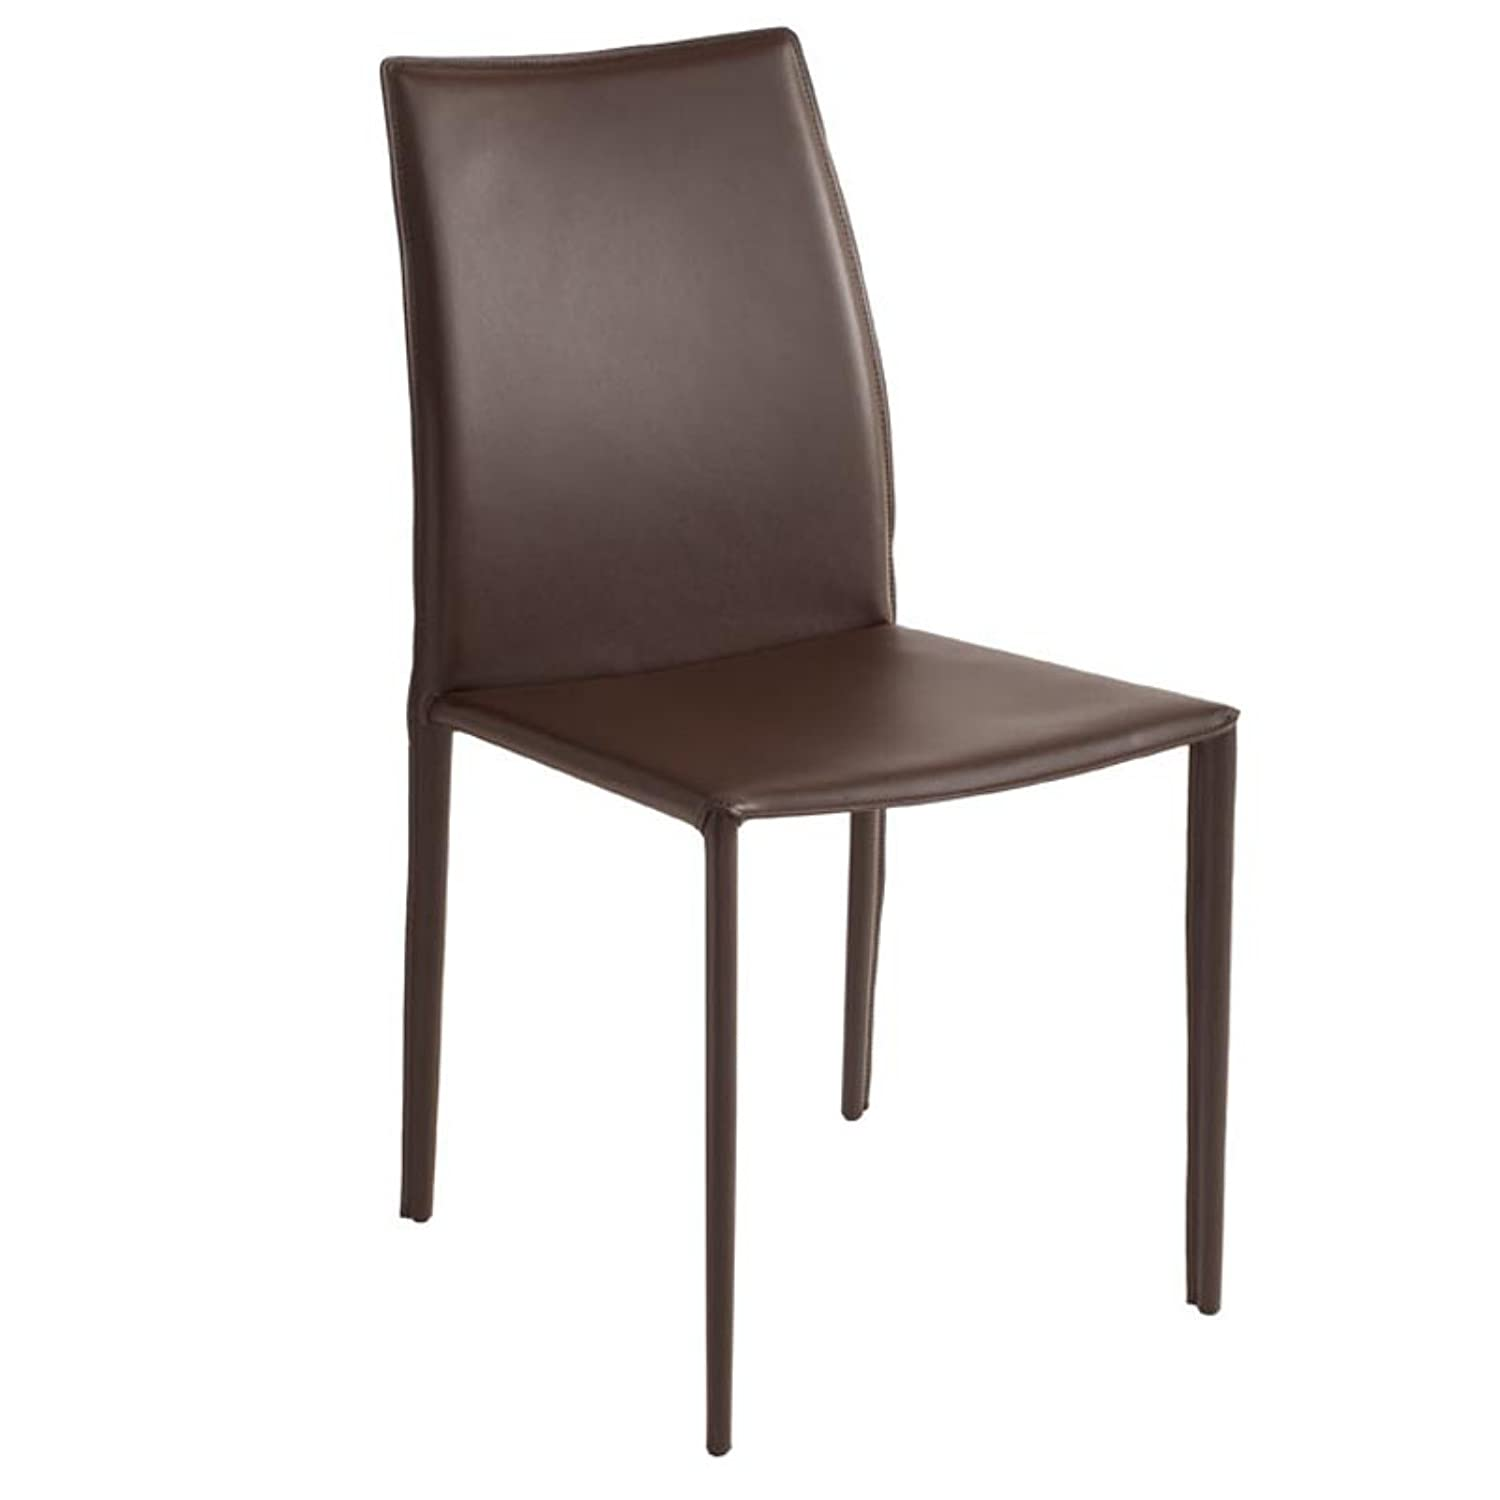 Nuevo Sienna Leather Dining Side Chair in White